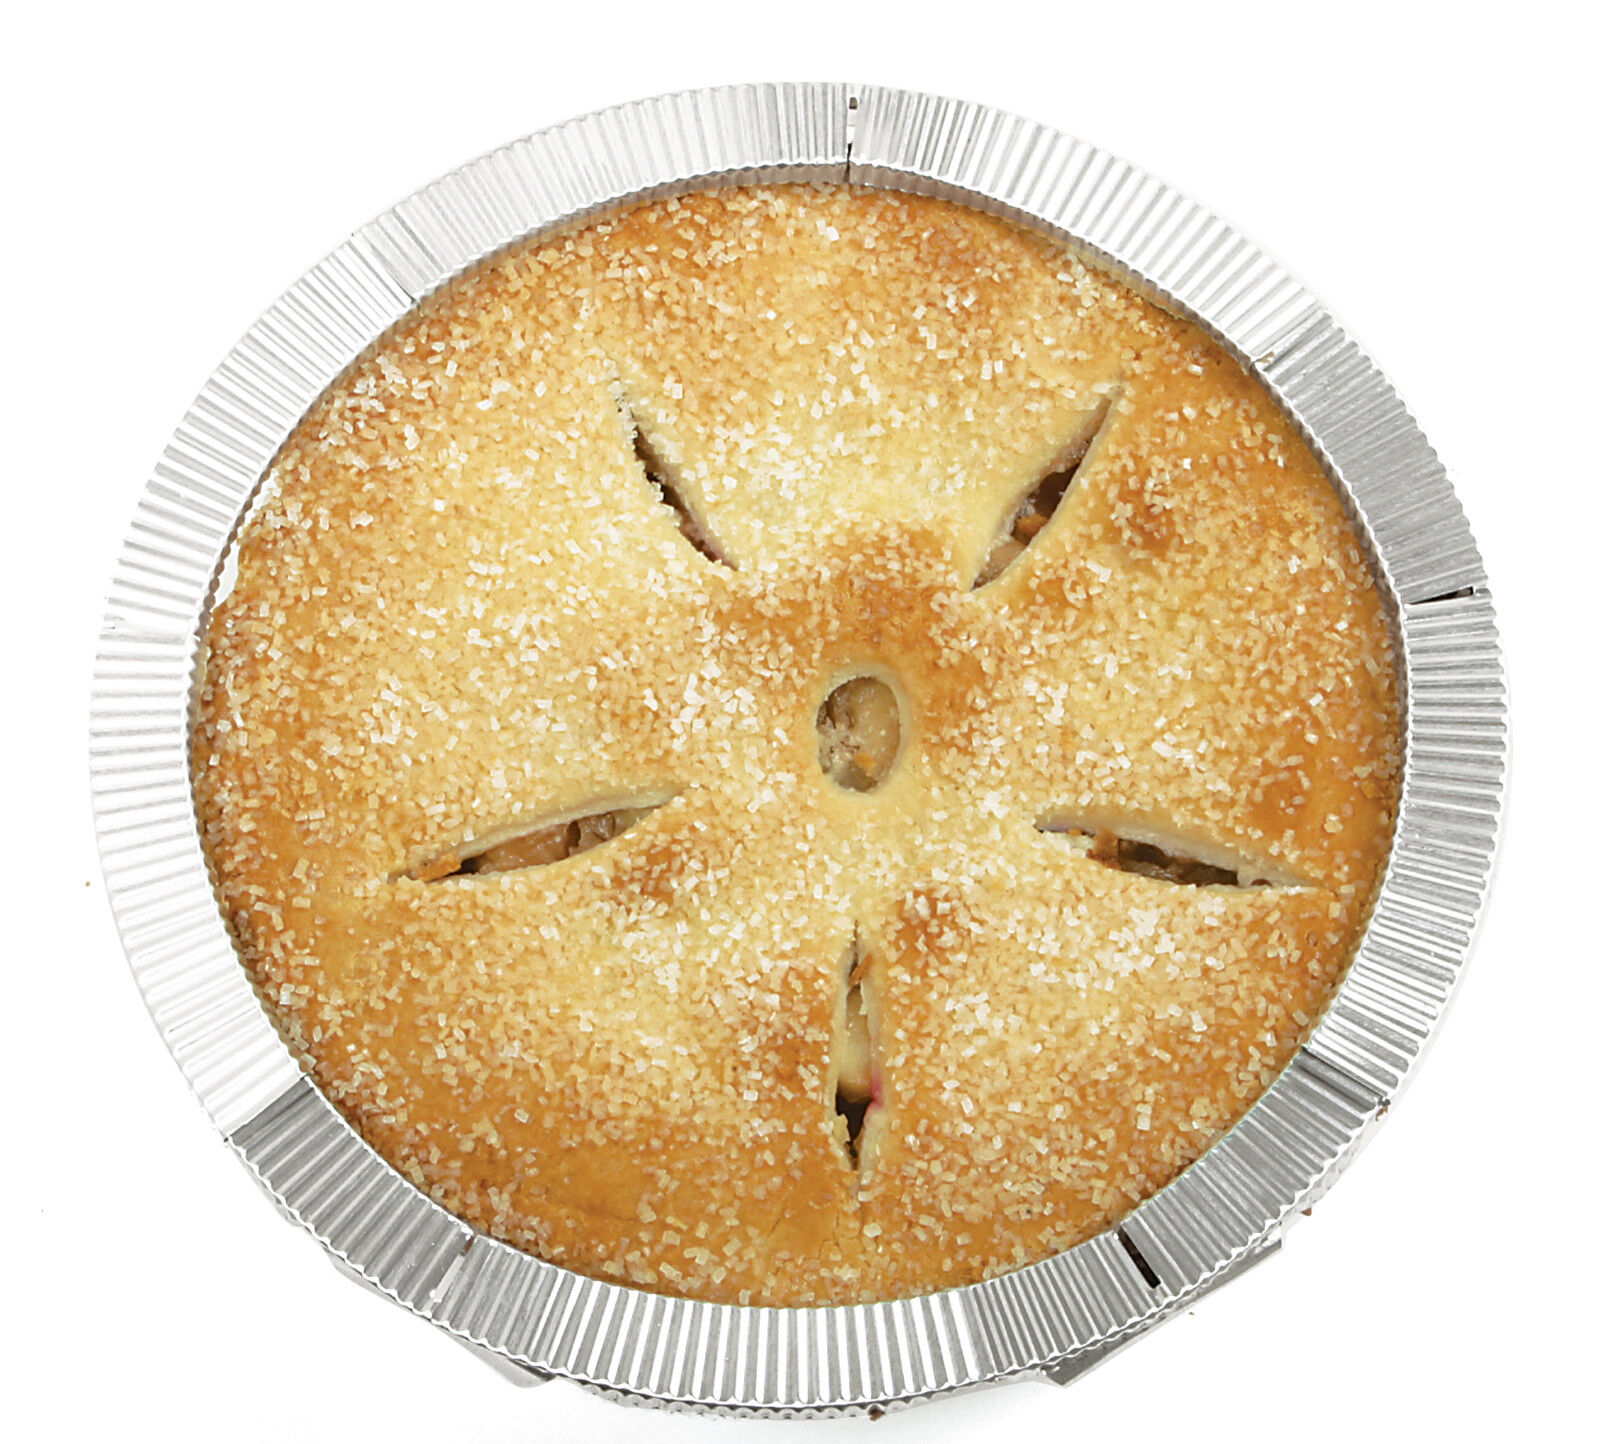 Norpro 3270 Pie Crust Shield Fits Up To 10 Pans on Sale